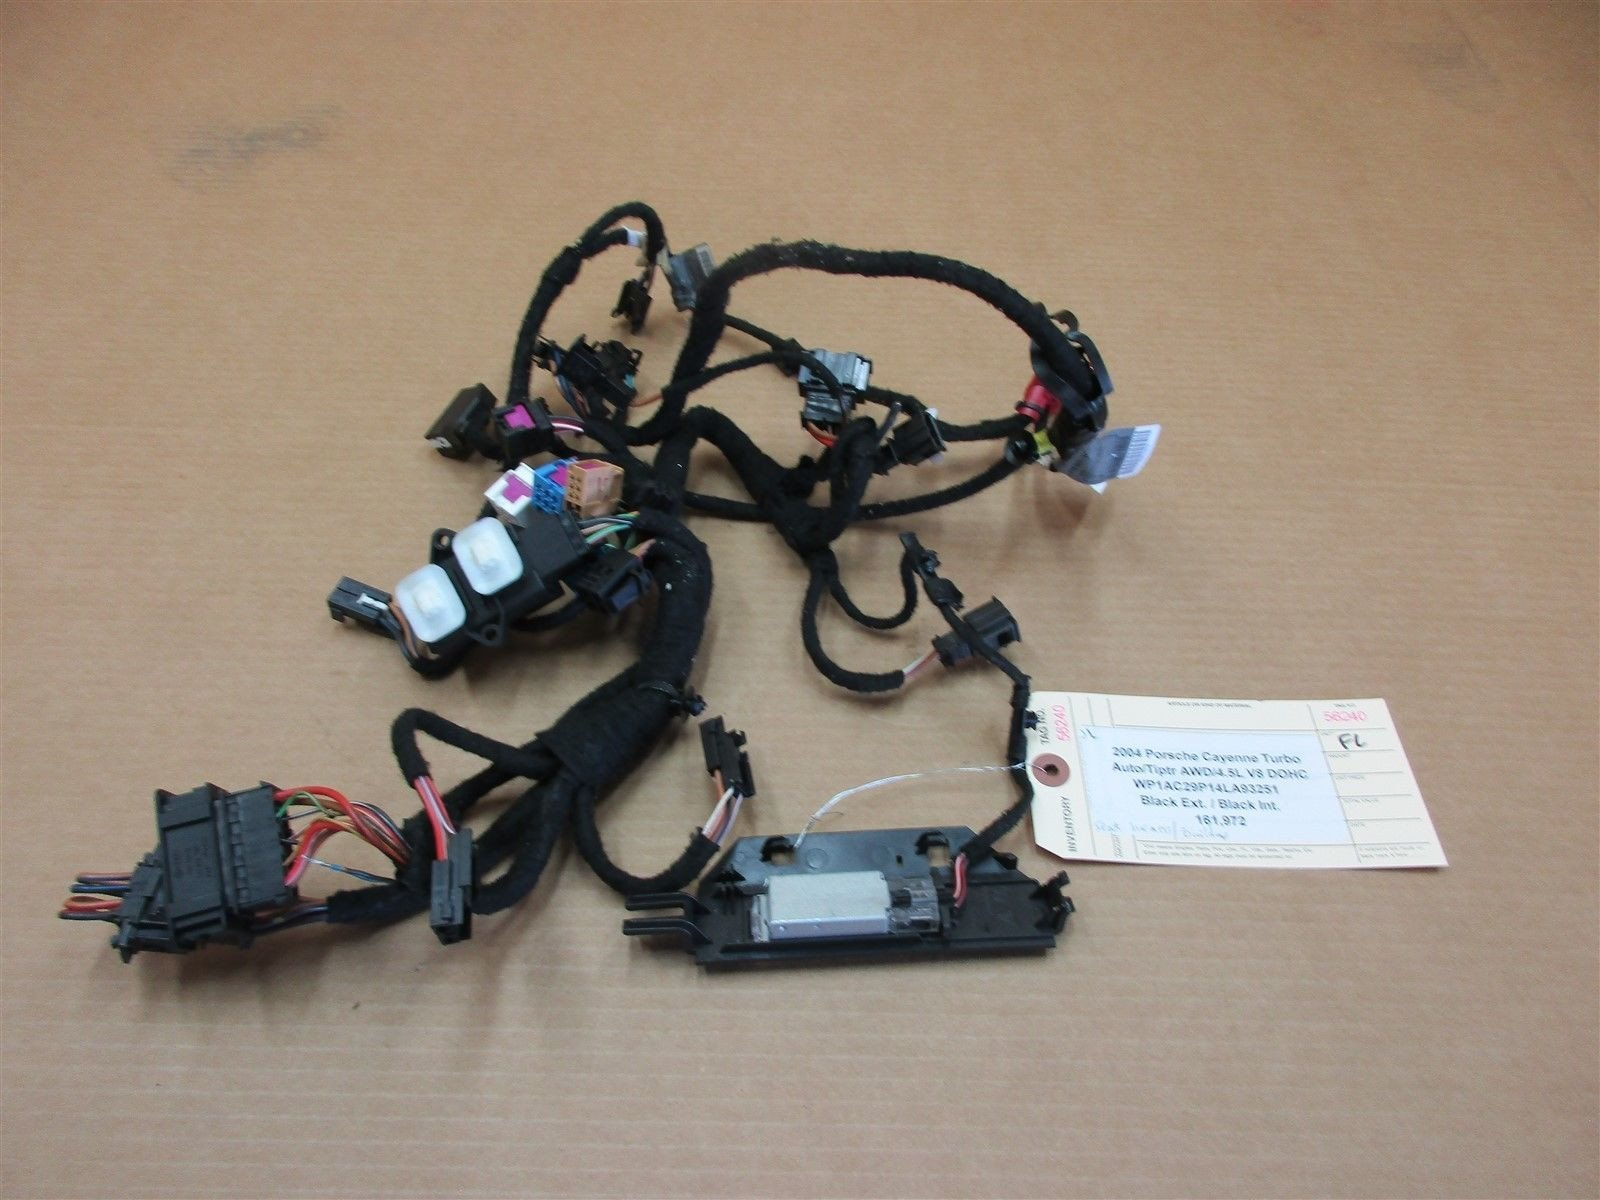 04 Cayenne Turbo AWD Porsche 955 L FRONT SEAT WIRING HARNESS 7L0959772 –  Parts SocietyParts Society